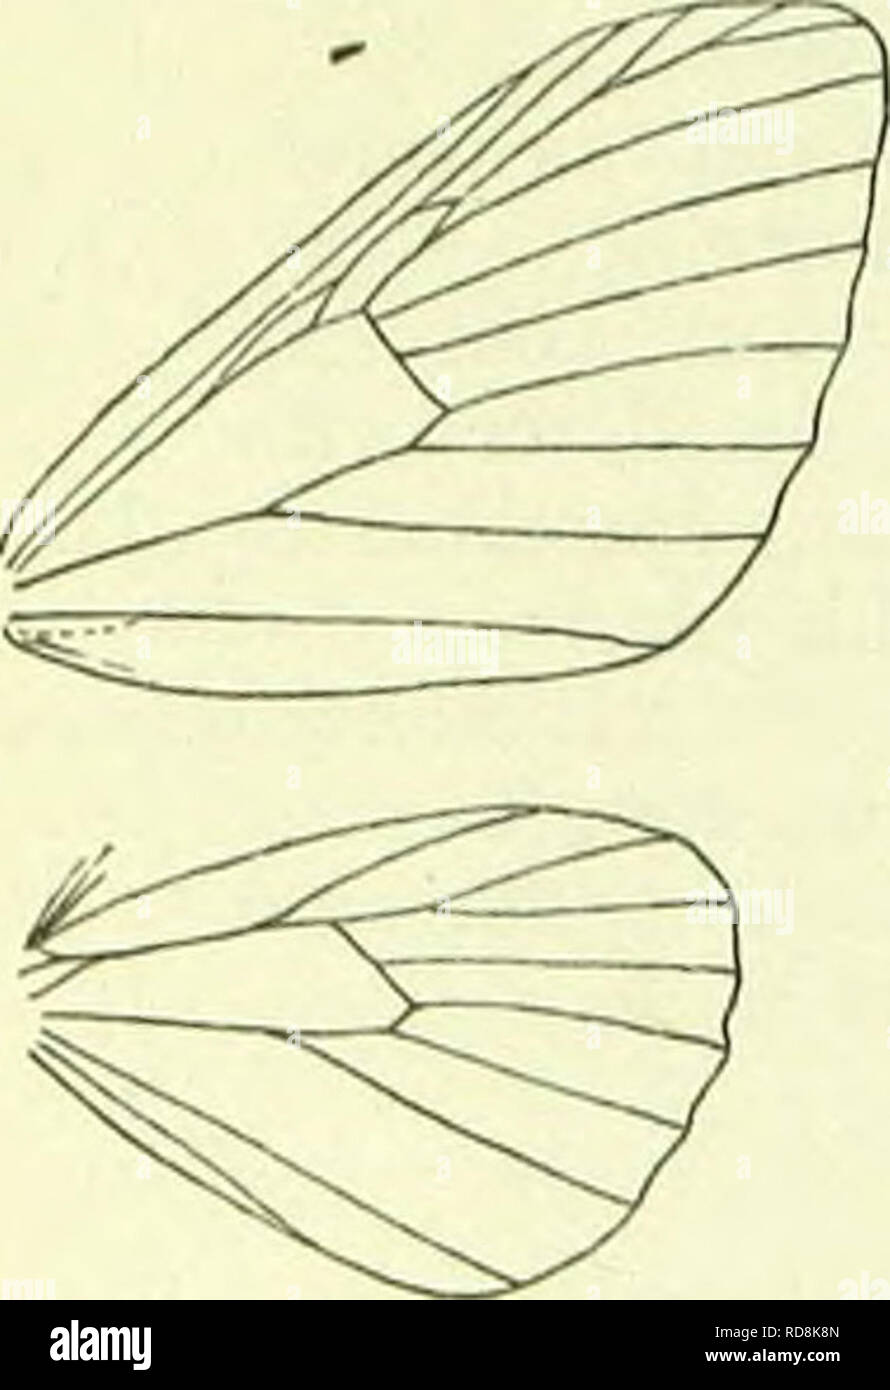 . A handbook of British lepidoptera. Lepidoptera. 15, Cataclysms, lib. Face with somewhat projecting scales. Antennae in 3 cili- ated. Palpi rough-scaled. Forewings: areole double, but posterior wall absent between 7 and 8. Hindwings : 8 anastomos- ing with cell to beyond middle. A small genus, attached to the European region. 1. C. virgata, liott. {lineolata, Hb.) 19-22 mm. Forewings fus- cous, densely whitish -sprinkled, Fonwtagof (***»»»***. with nearly straight darker striae; median band limited by nearly straight slender oehreous-brown externally blackish- edged fasciae, preceded and seco - Stock Image